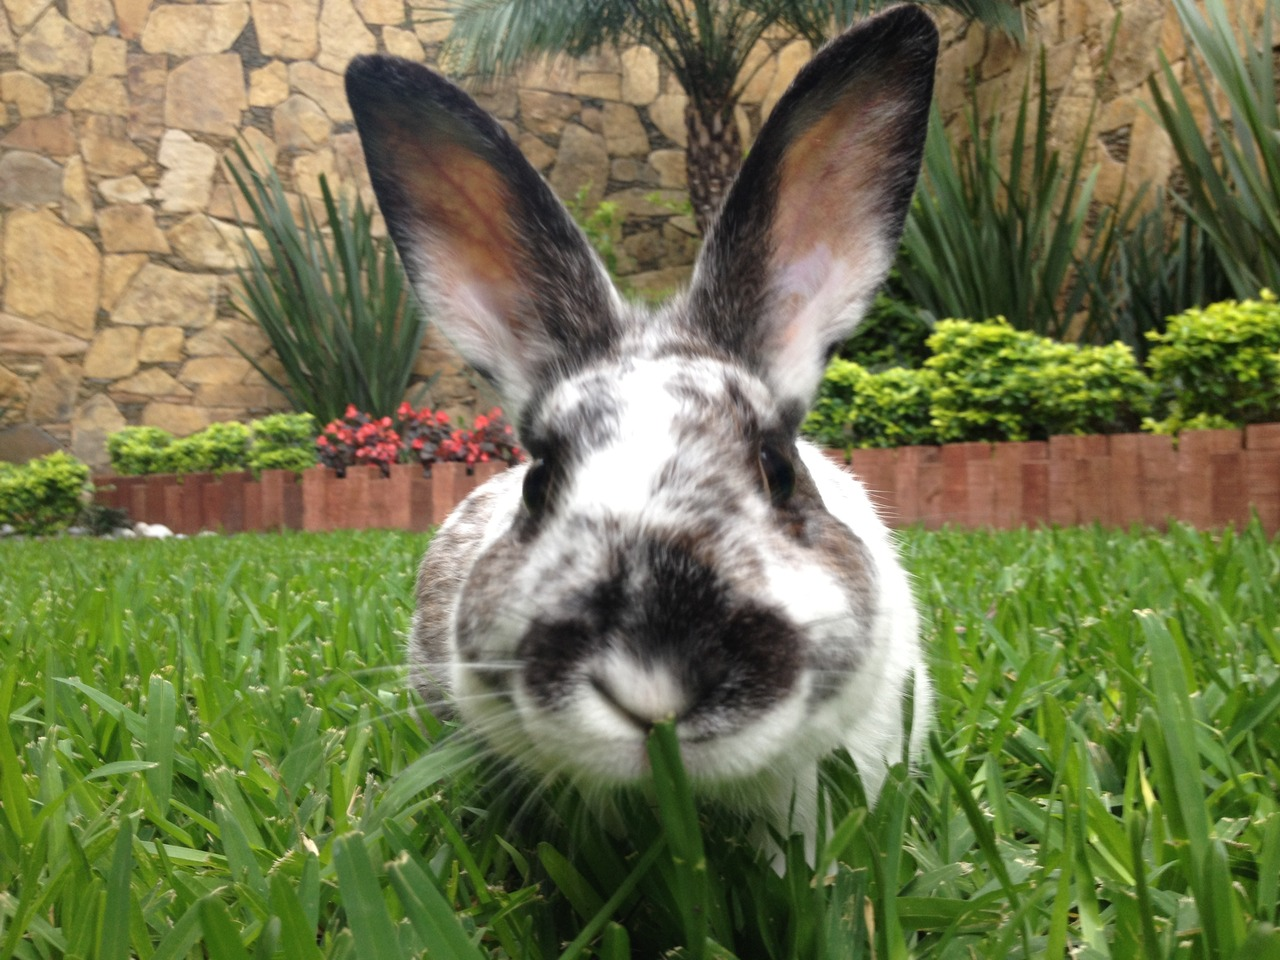 Curious Bunny Noses Up to the Camera